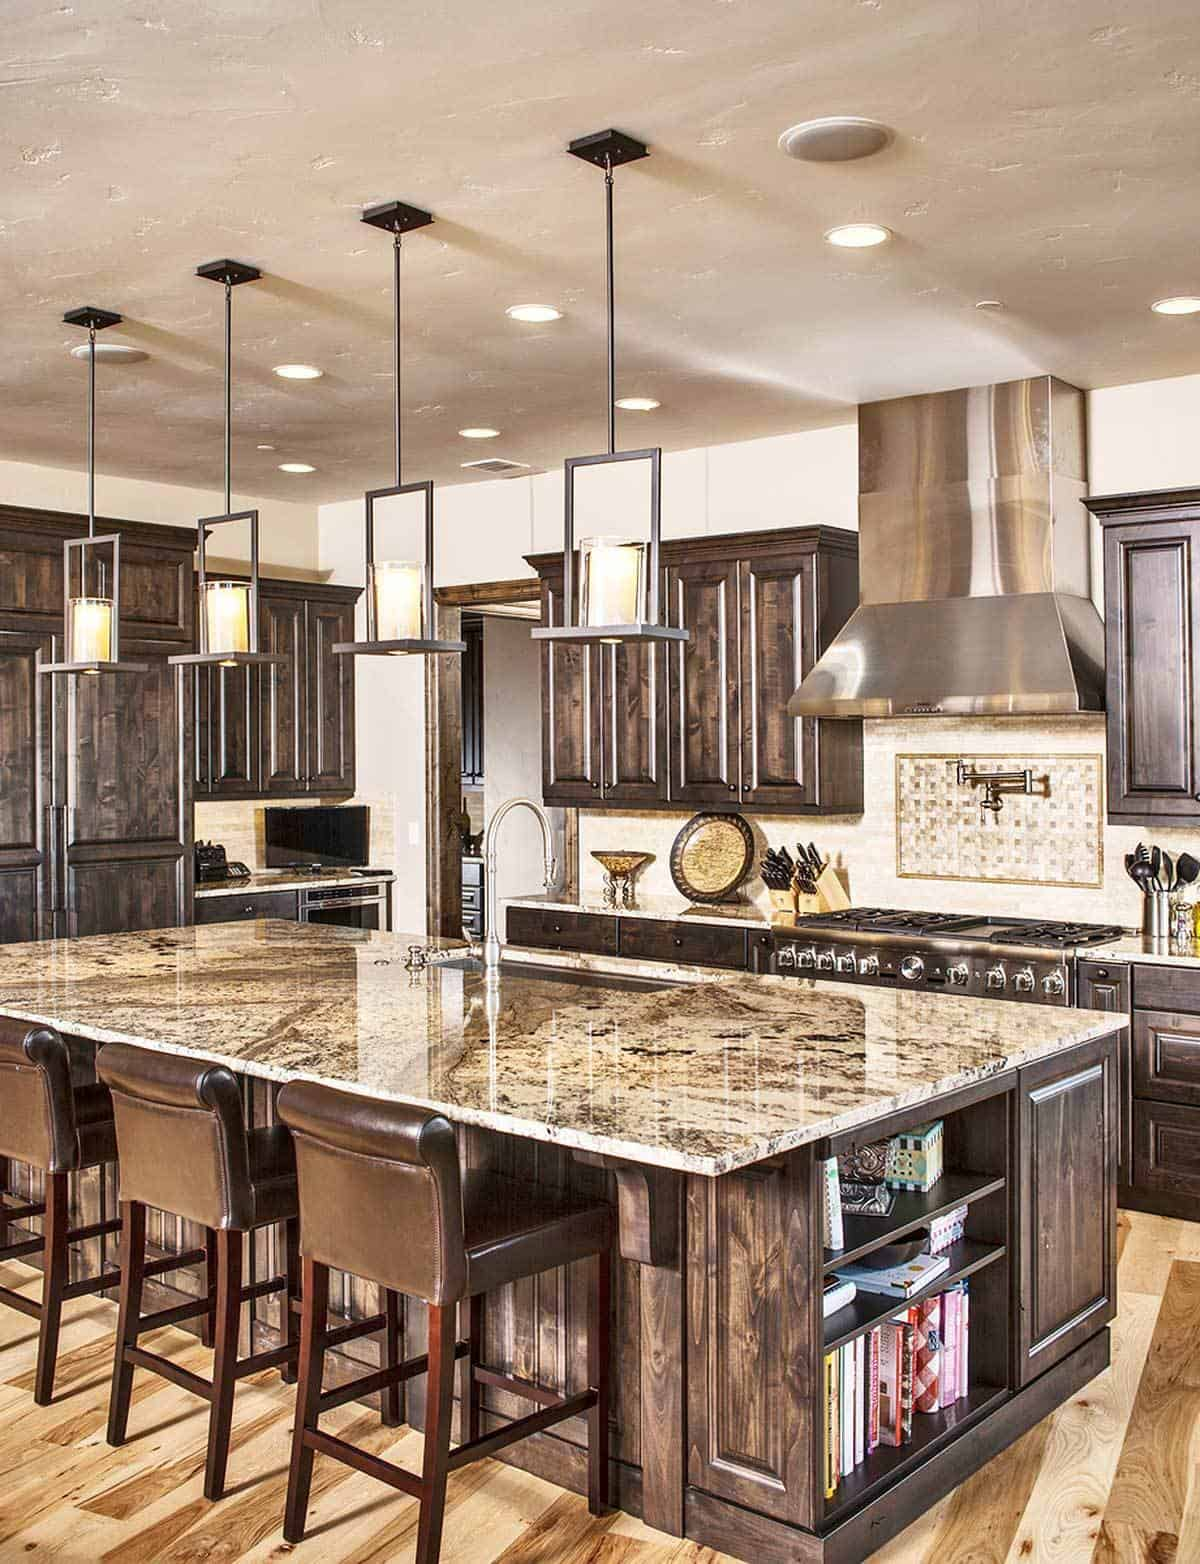 The kitchen is equipped with natural wood cabinetry, stainless steel appliances, granite countertops, and a large breakfast island.